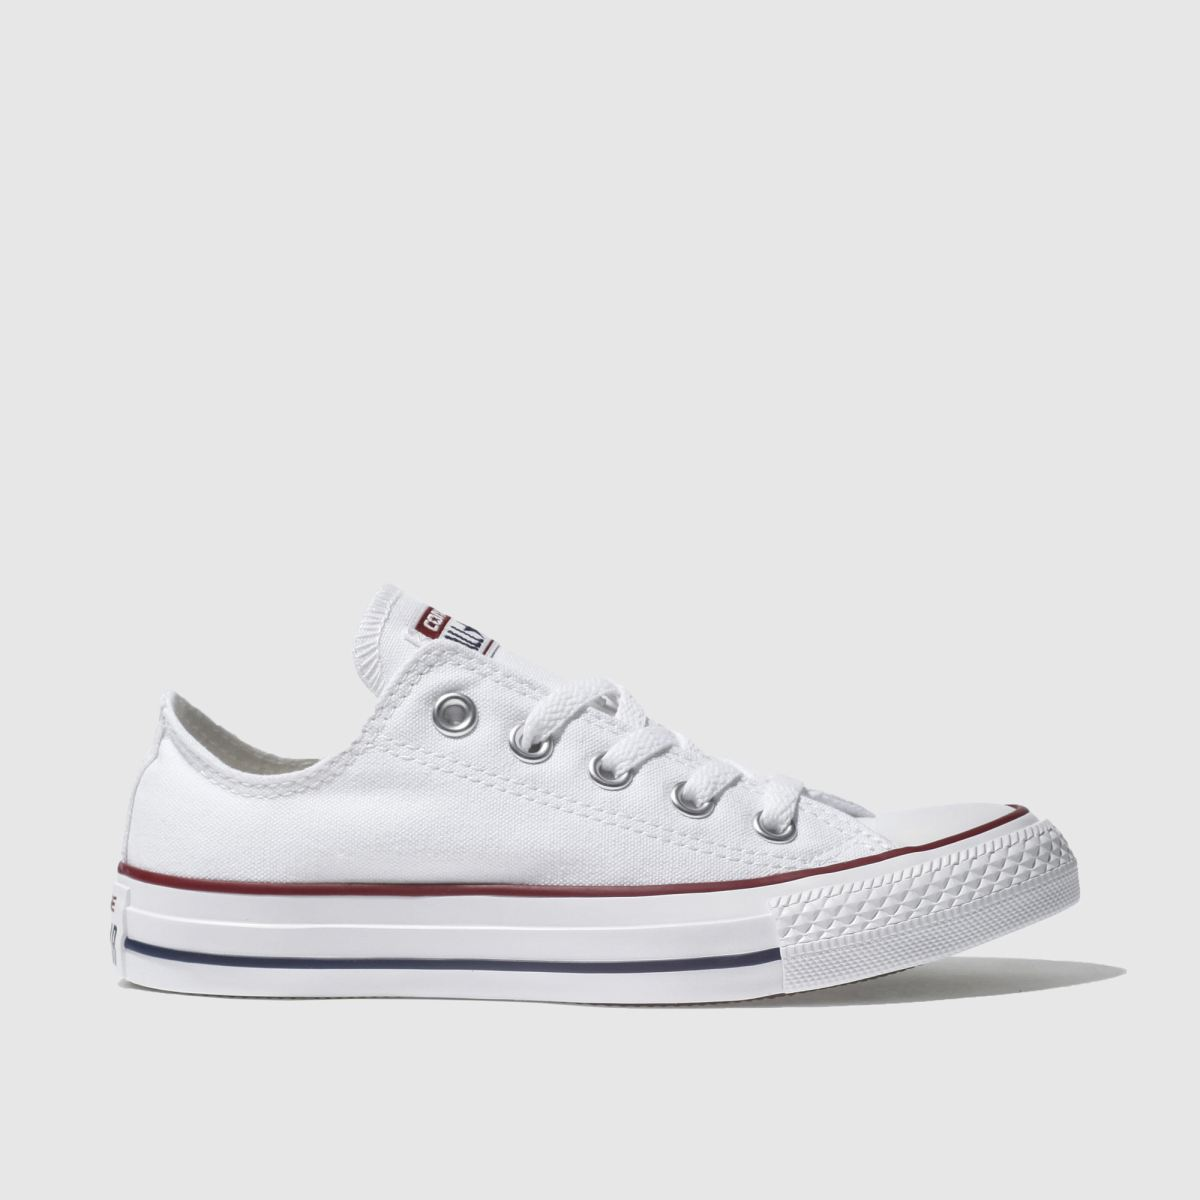 Converse White Leather Mens